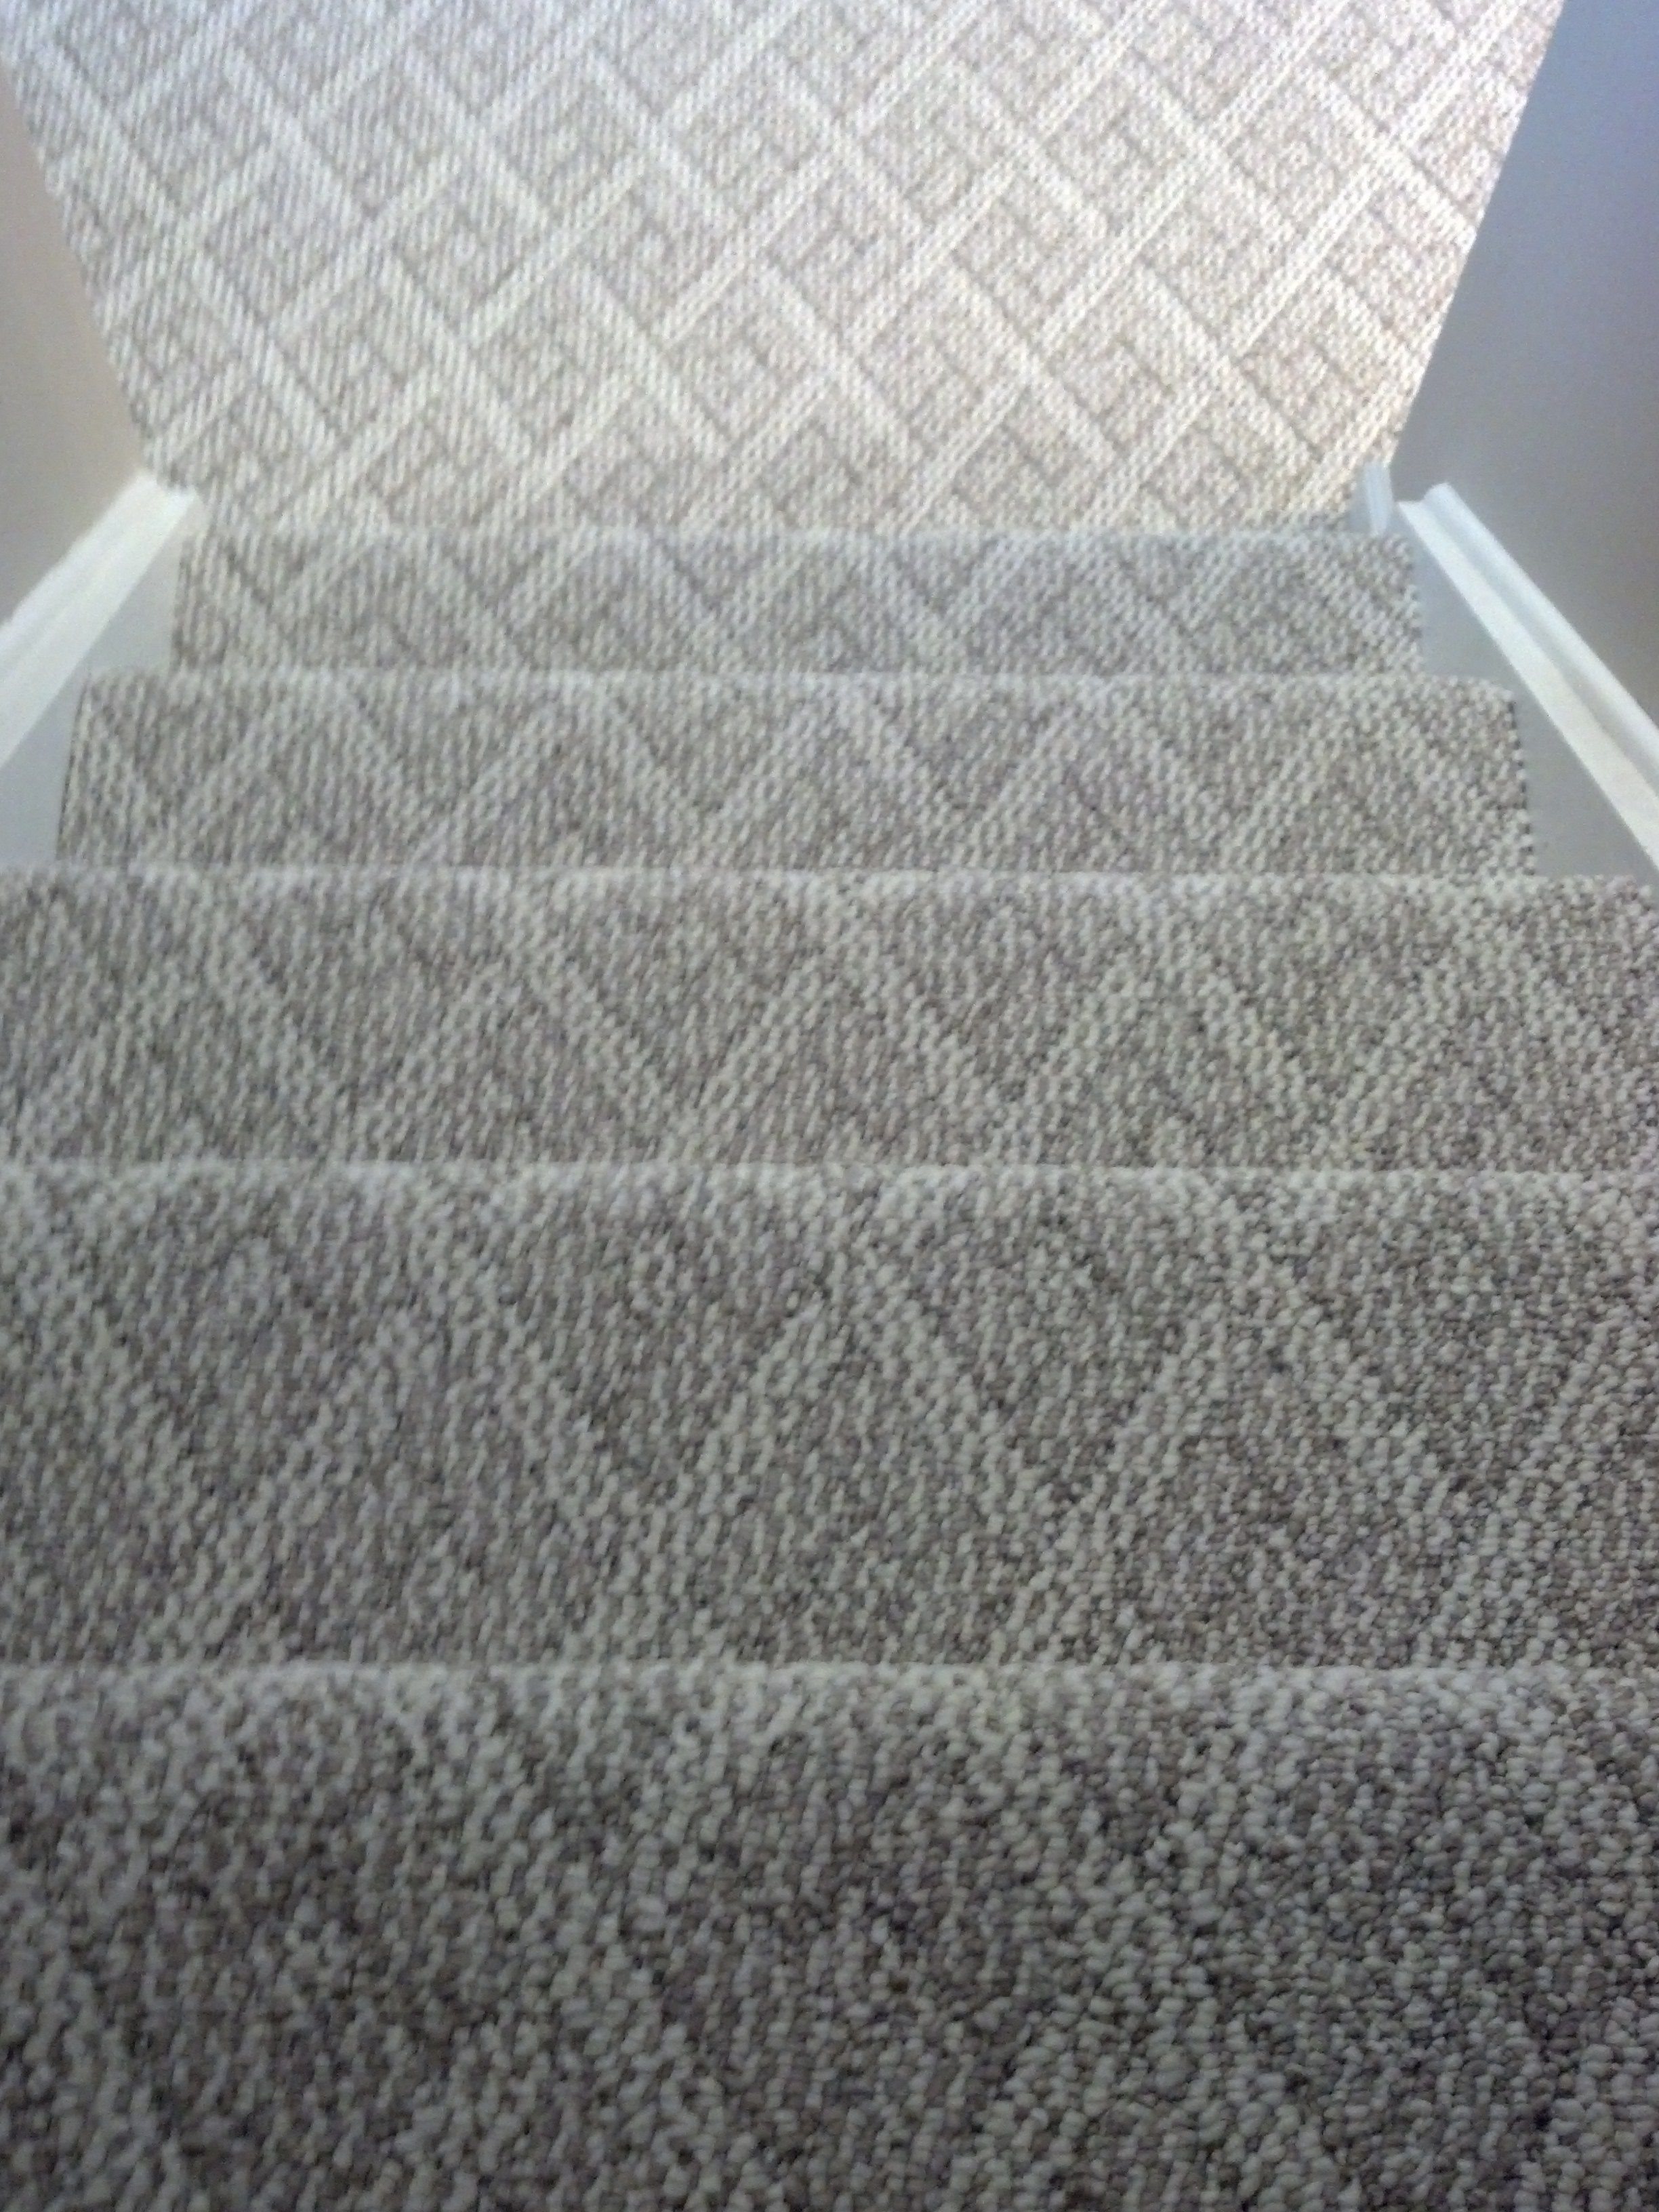 berber carpets berber carpet cincinnati, ohio installed on steps and basement family room.  note.....notice VTNJELJ